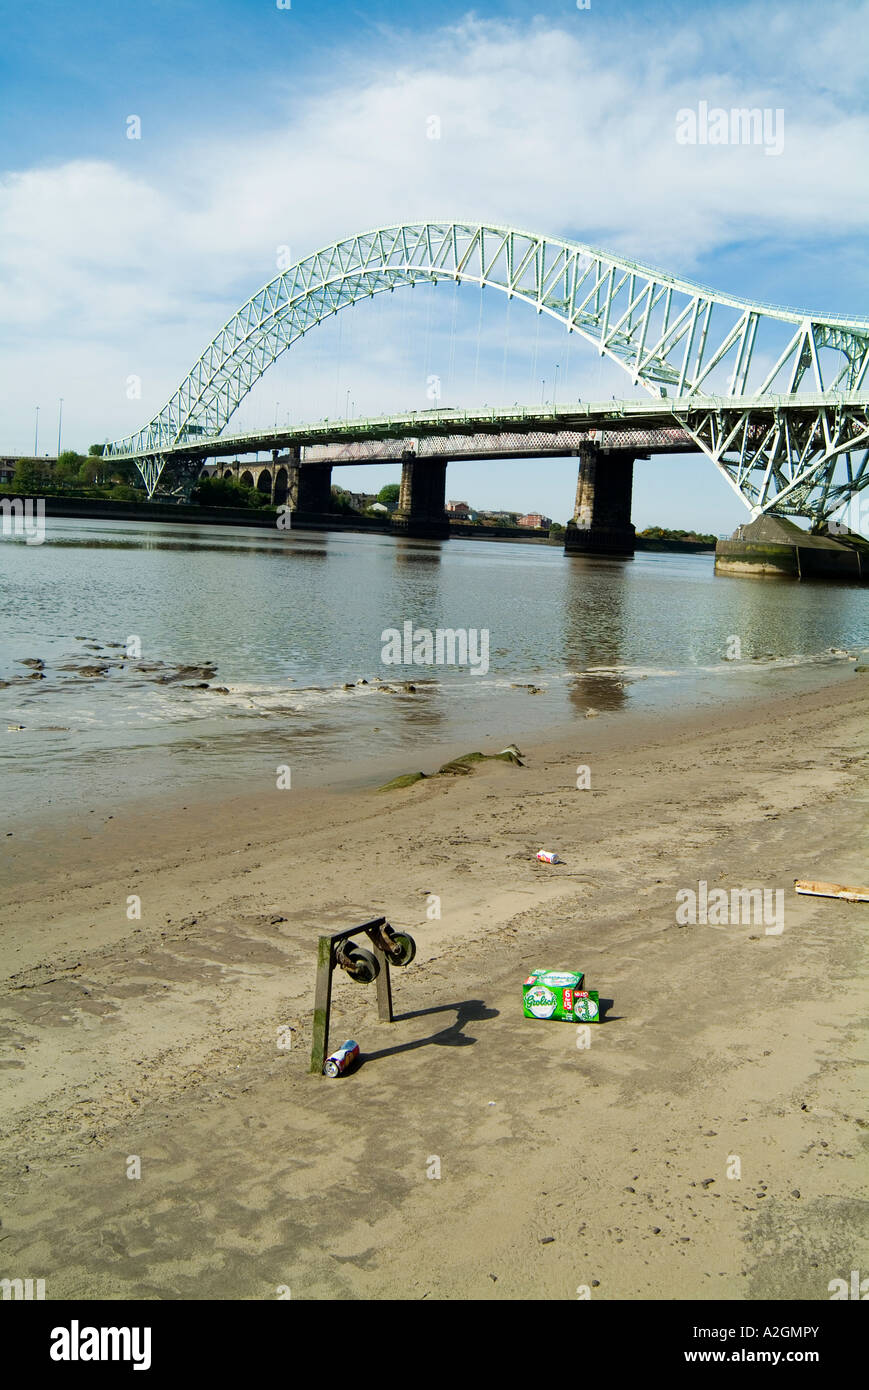 Runcorn Widnes Bridge spanning the River Mersey in Cheshire with debris in the foreground. Stock Photo